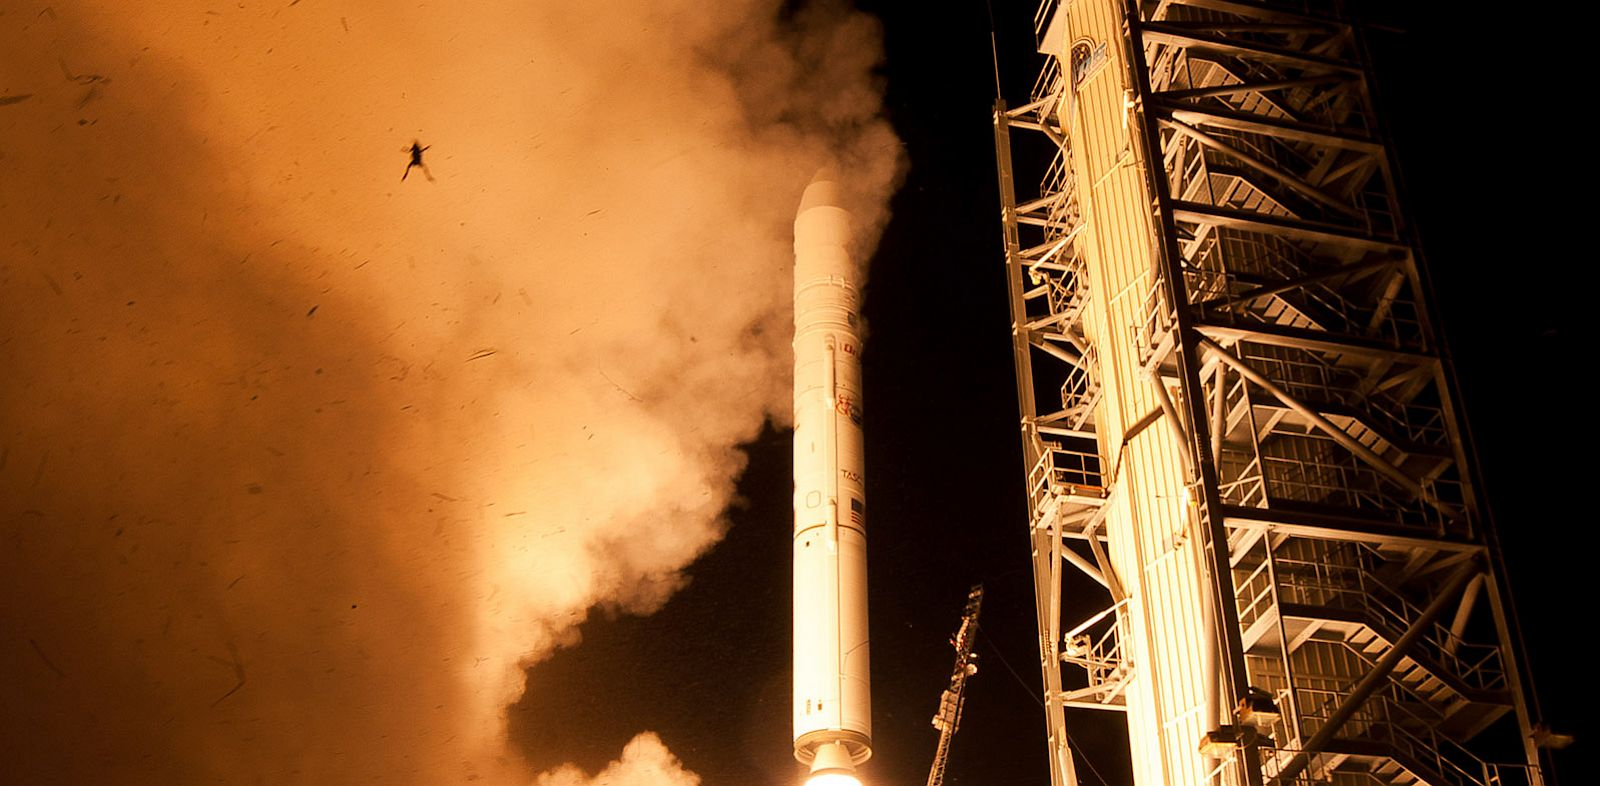 PHOTO: A still camera on a sound trigger captured this photo of an airborne frog as NASAs LADEE spacecraft lifted off from Pad 0B at Wallops Flight Facility in Virginia.